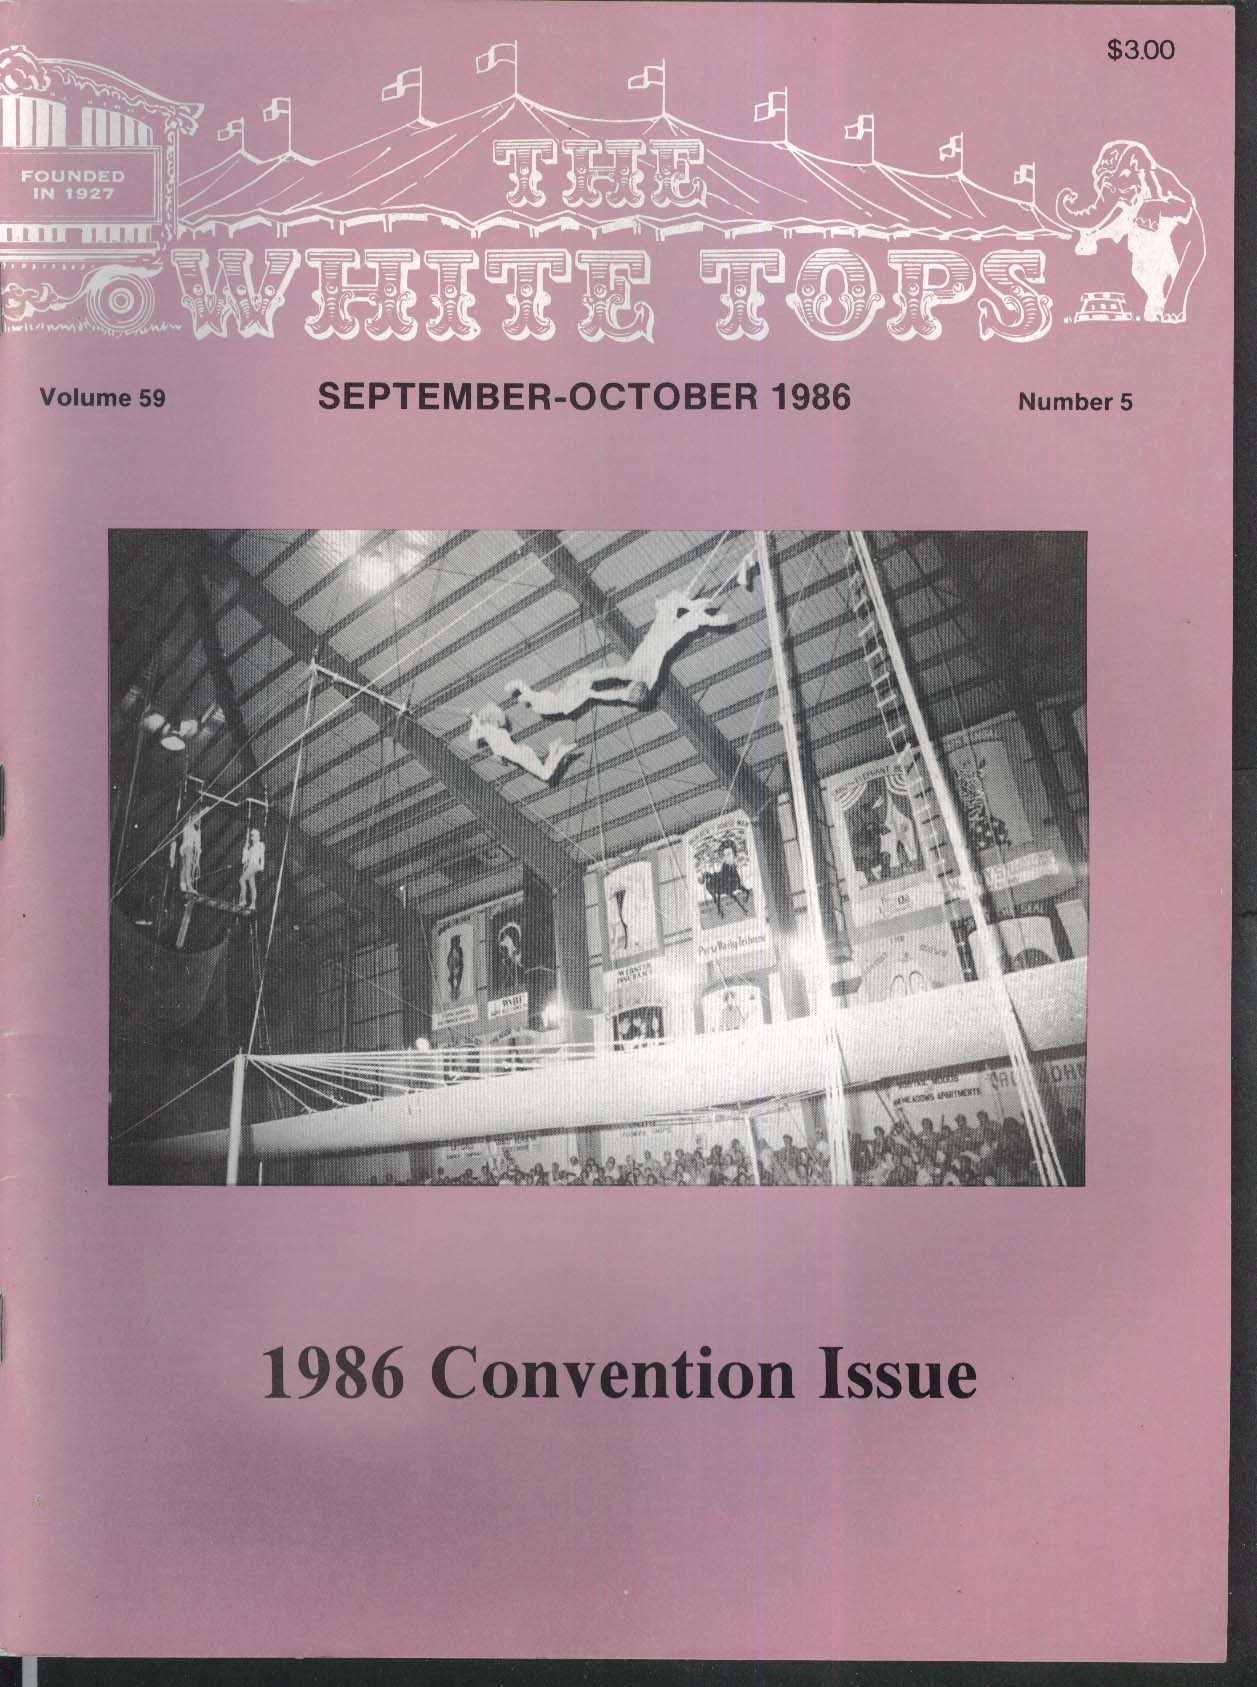 WHITE TOPS Convention Issue Indiana Circus 9-10 1986